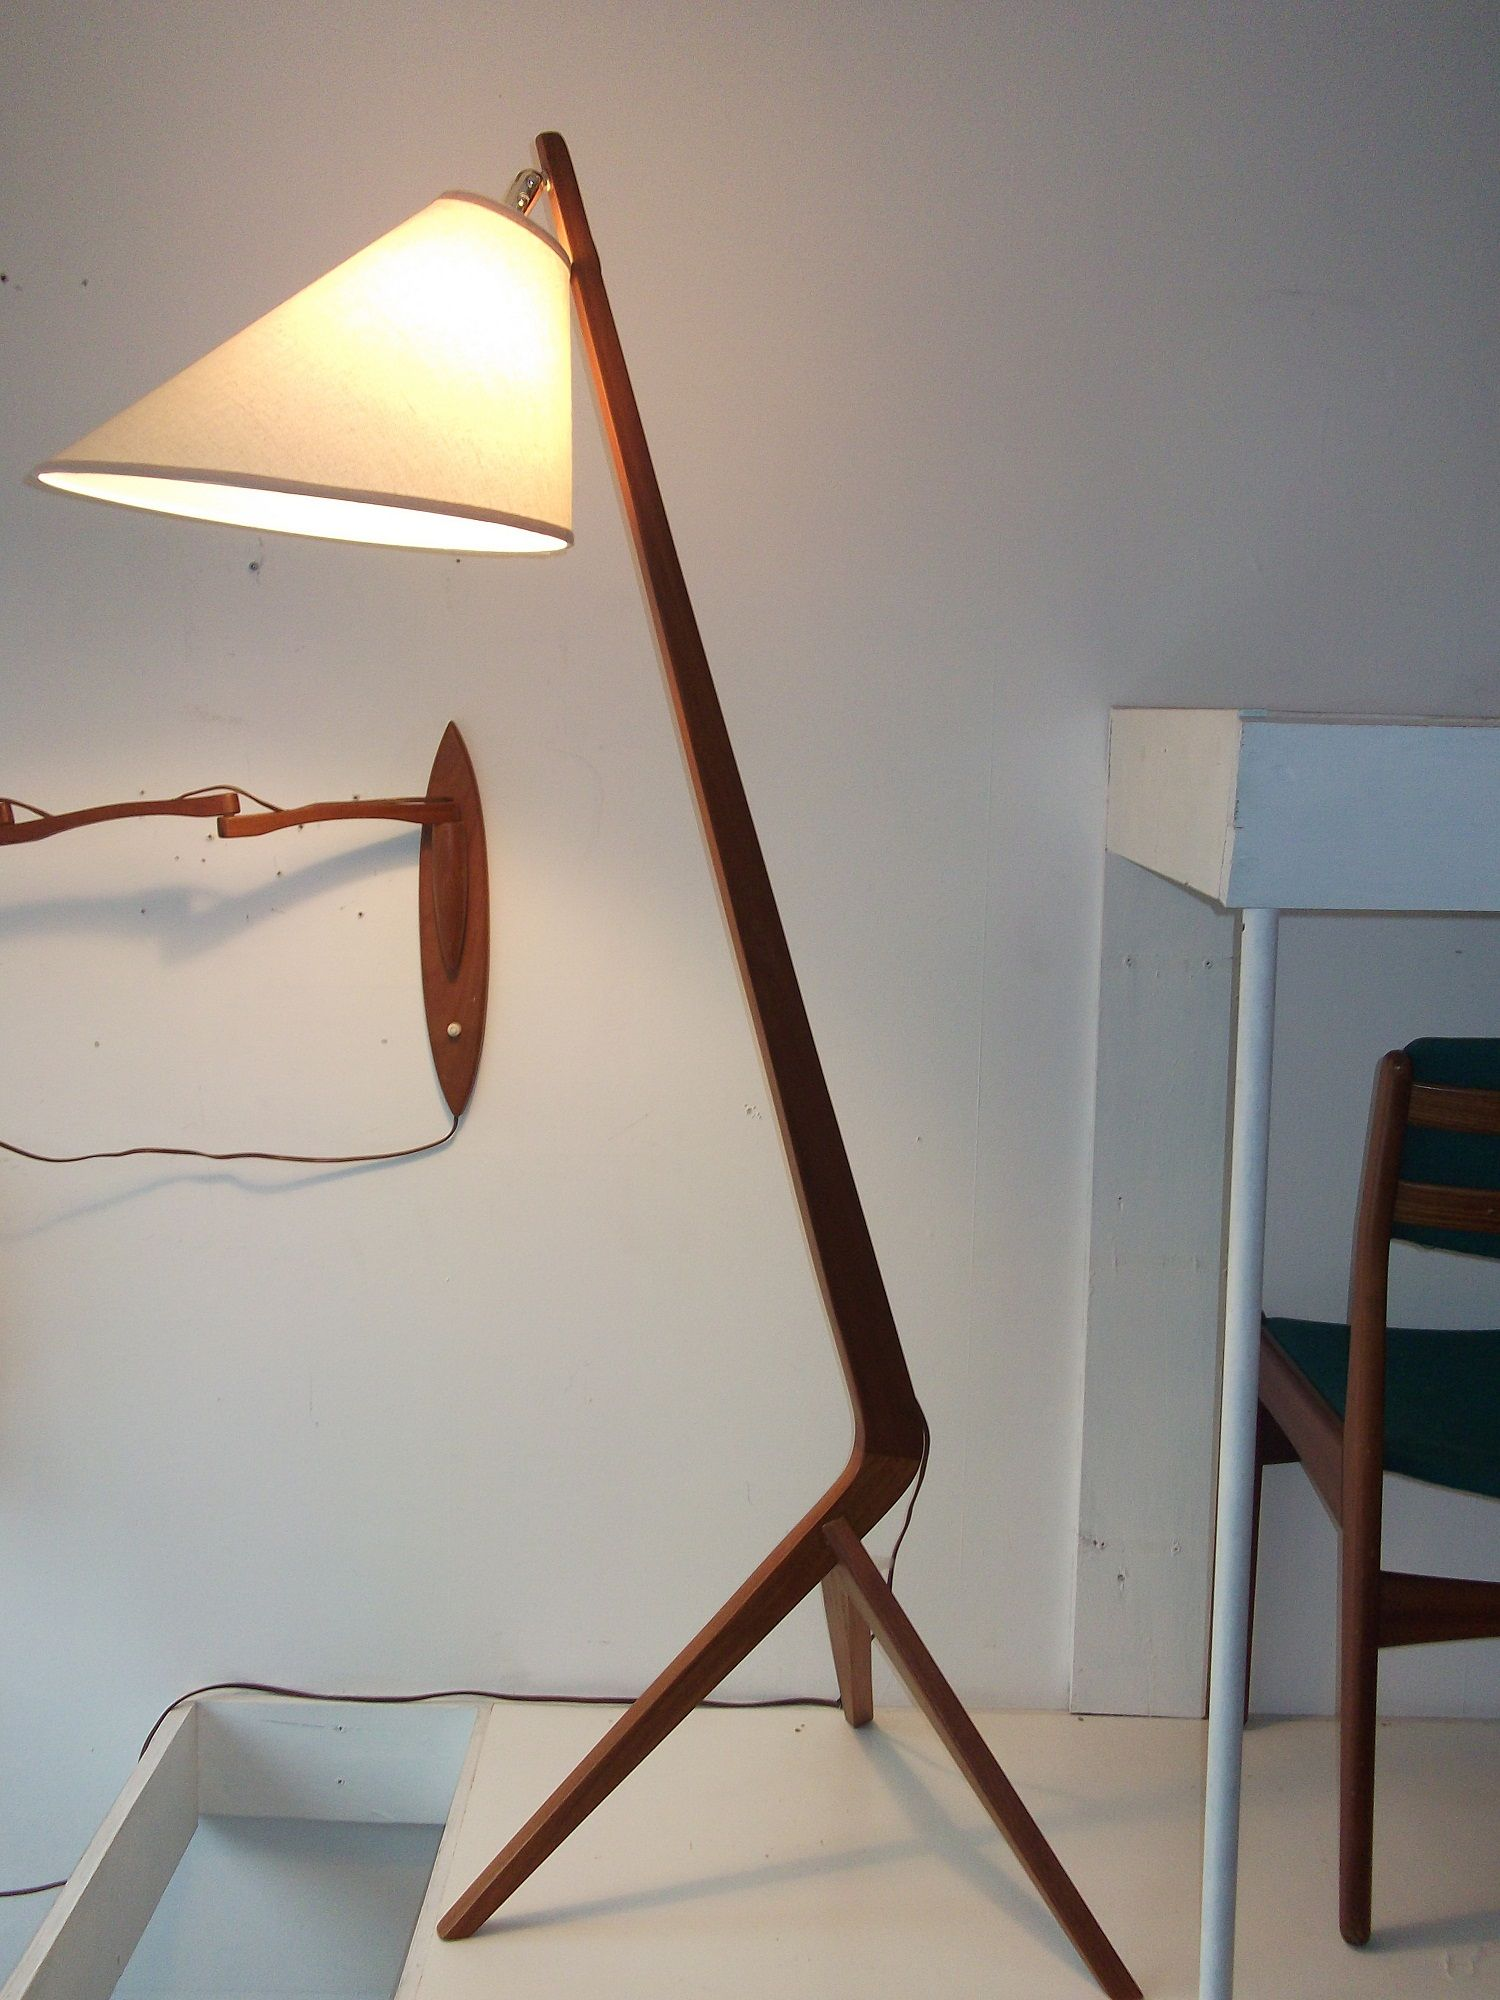 Great Extraordinary Mid Century Modern Teak 3 Legged Floor Lamp   Incredible  Design   Like A